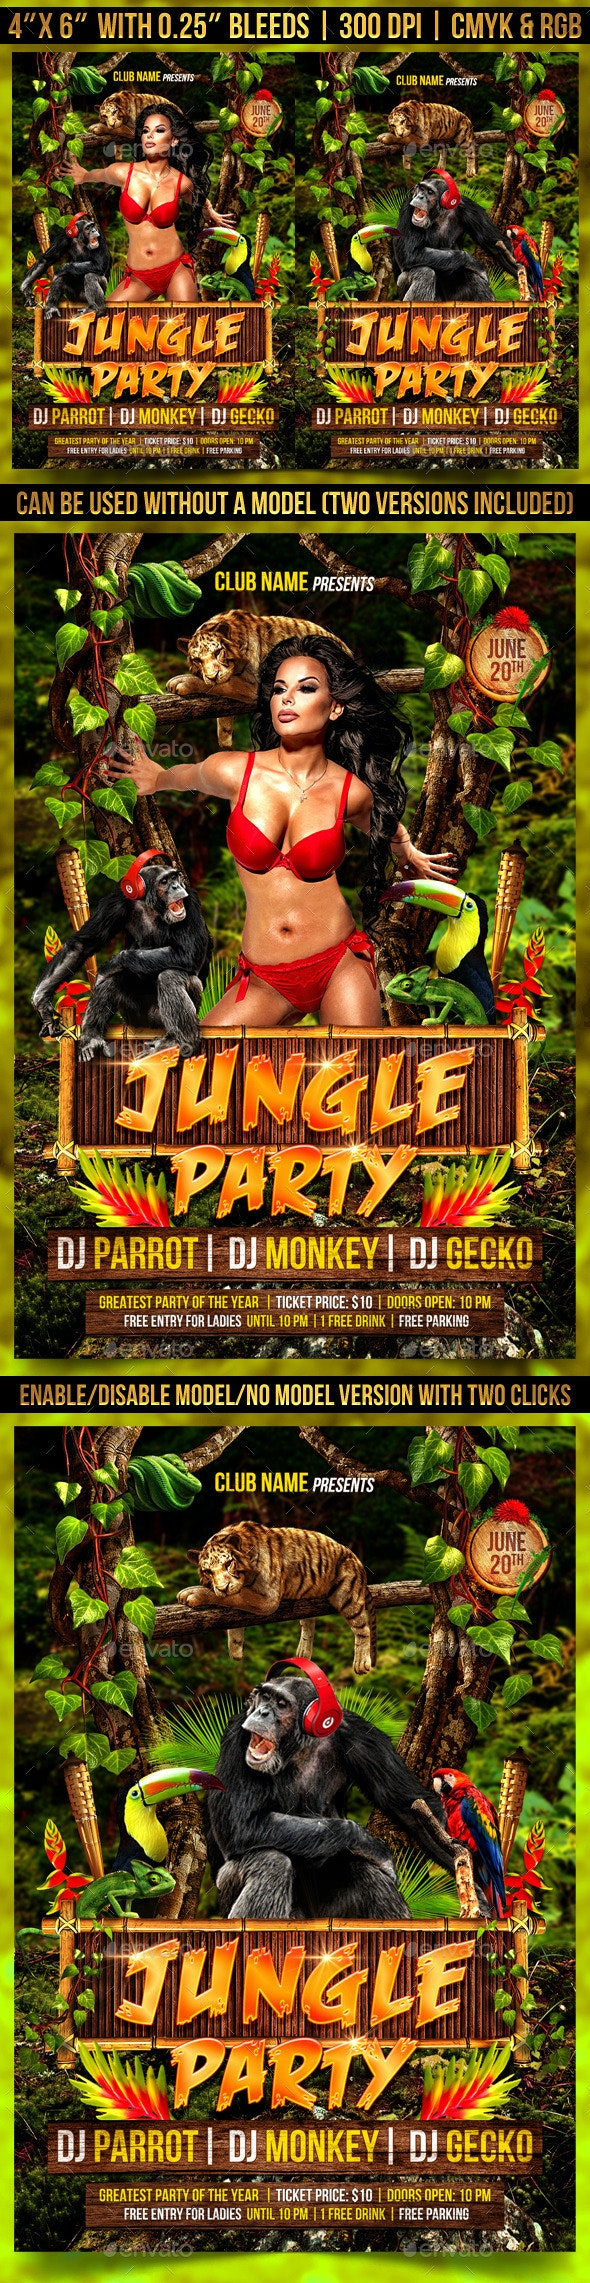 Jungle Party Flyer Template - Clubs & Parties Events